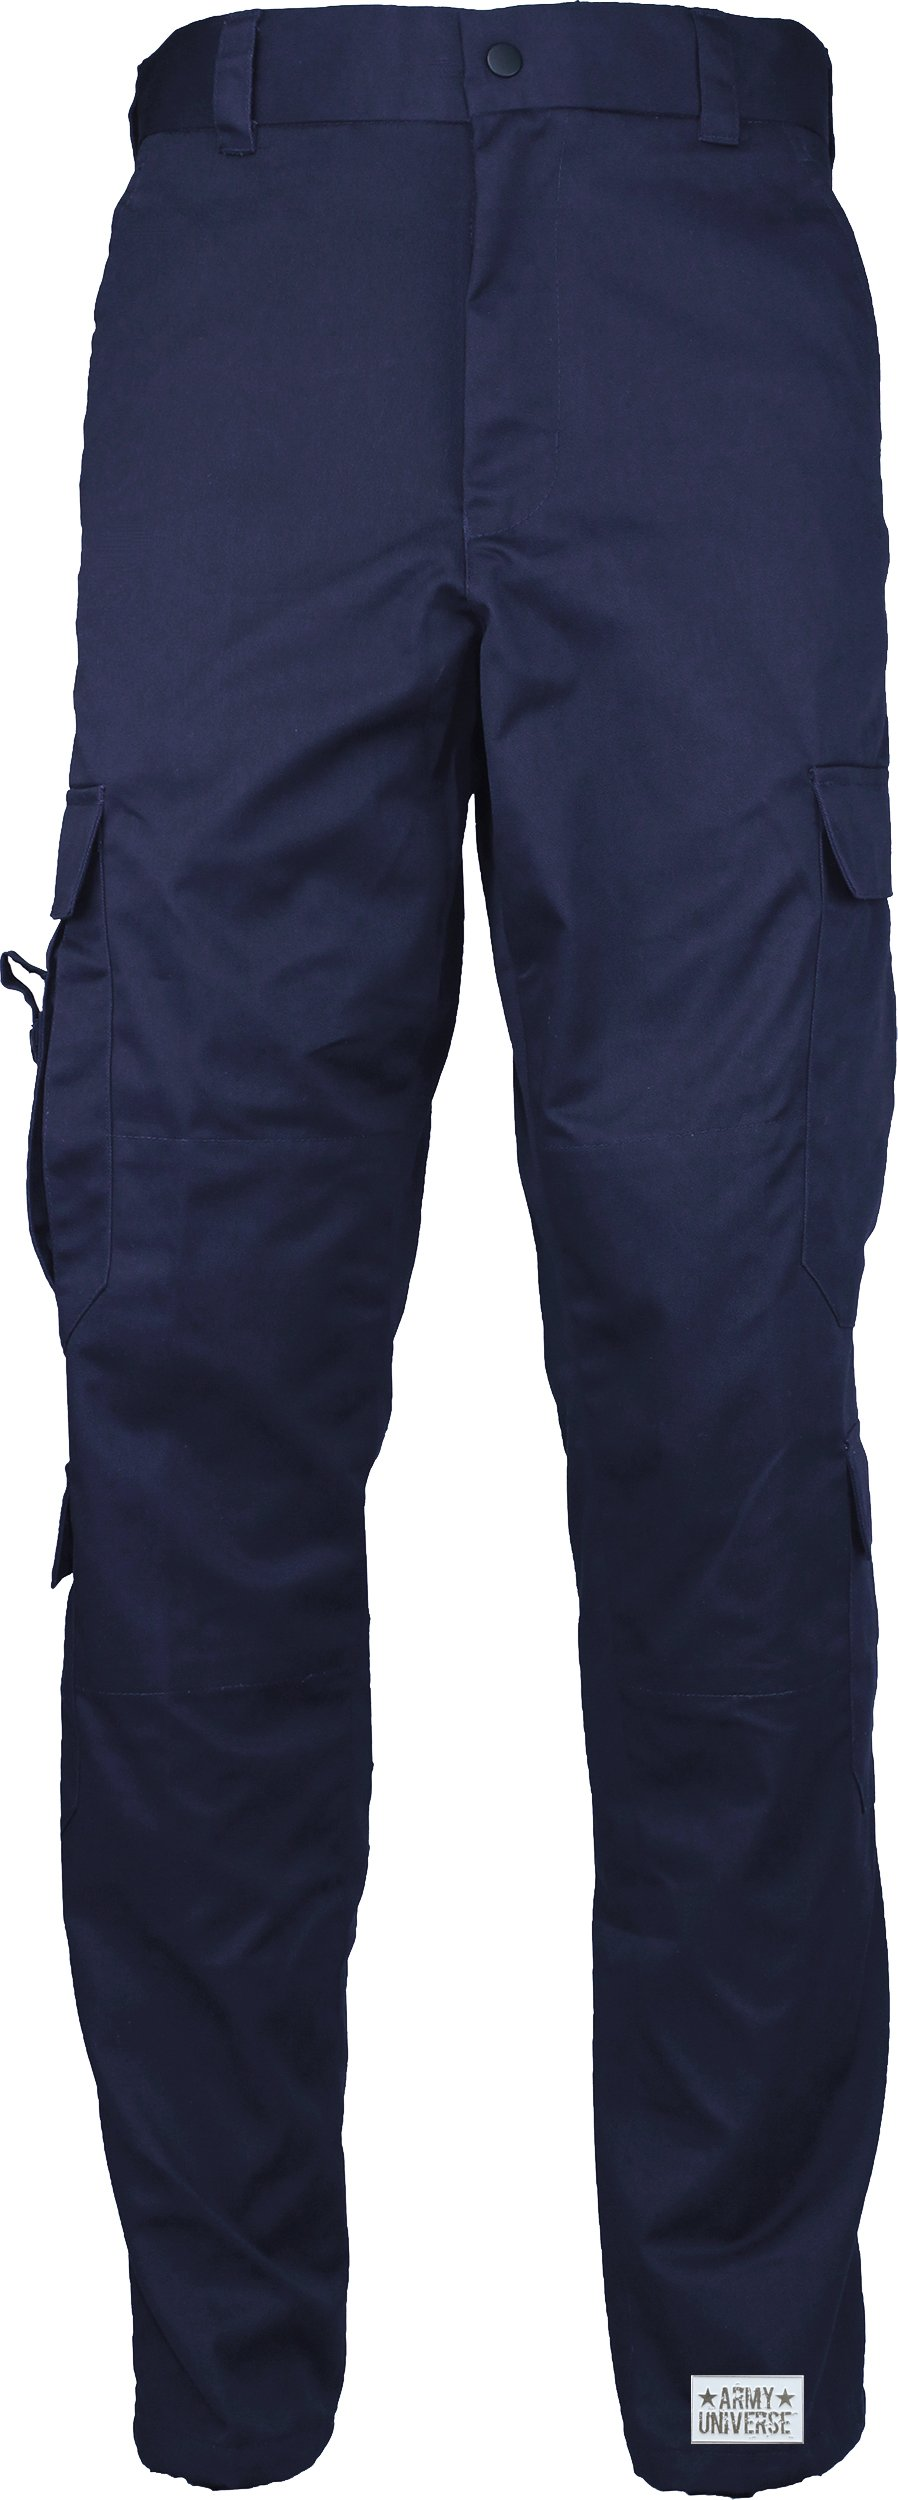 Navy Blue Uniform 9 Pocket Cargo Pants, Poly Cotton Work Pants for EMT EMS Police Security with Pin - (W 31-35 - I 29.5-32.5) Medium